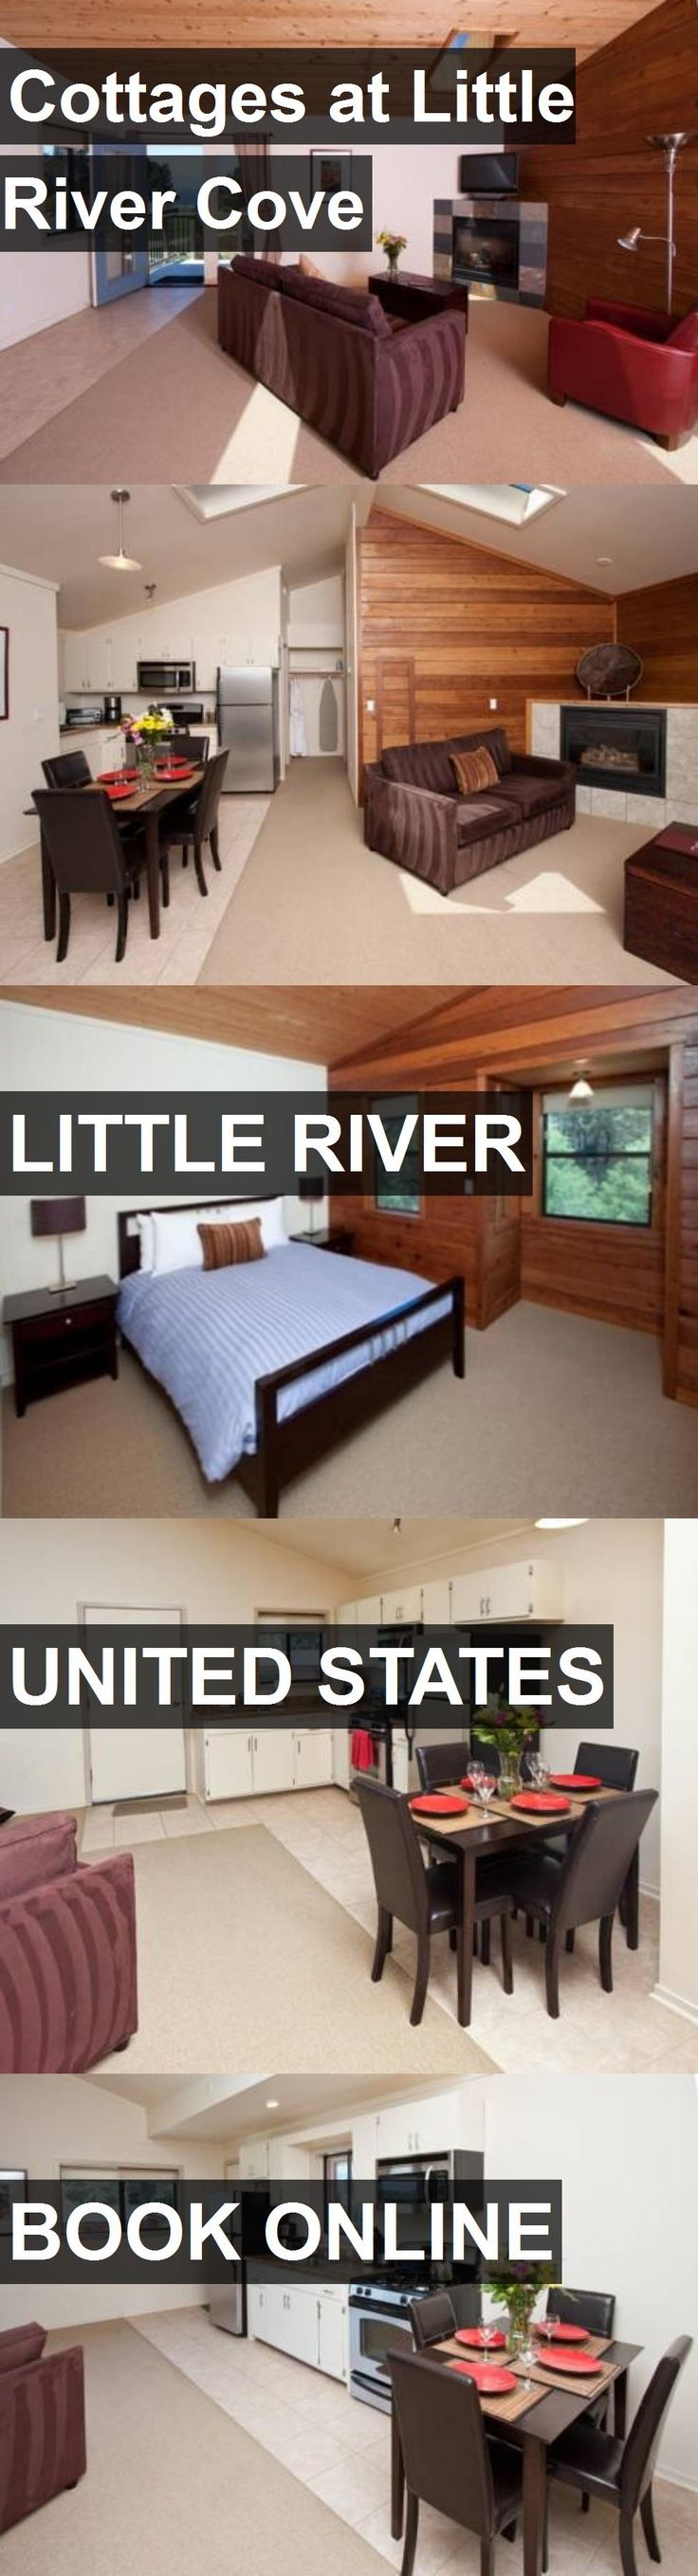 Hotel Cottages at Little River Cove in Little River, United States. For more information, photos, reviews and best prices please follow the link. #UnitedStates #LittleRiver #travel #vacation #hotel